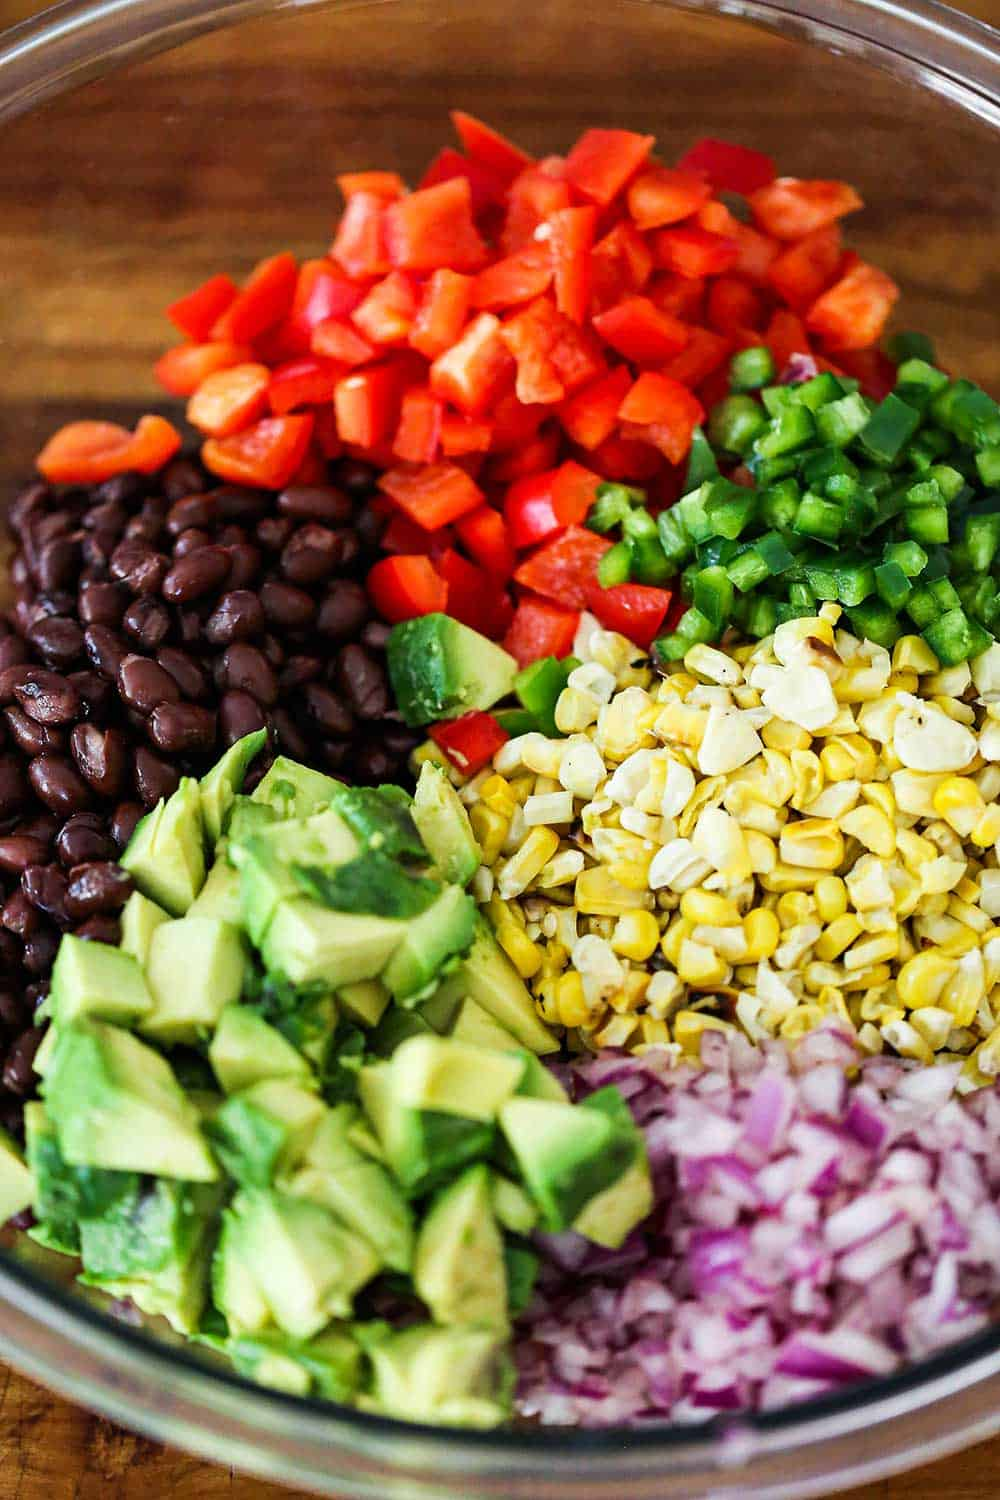 A glass bowl filled with a portion each of chopped avocado, red onion, corn kernels, jalapeno, red bell peppers, and black beans.